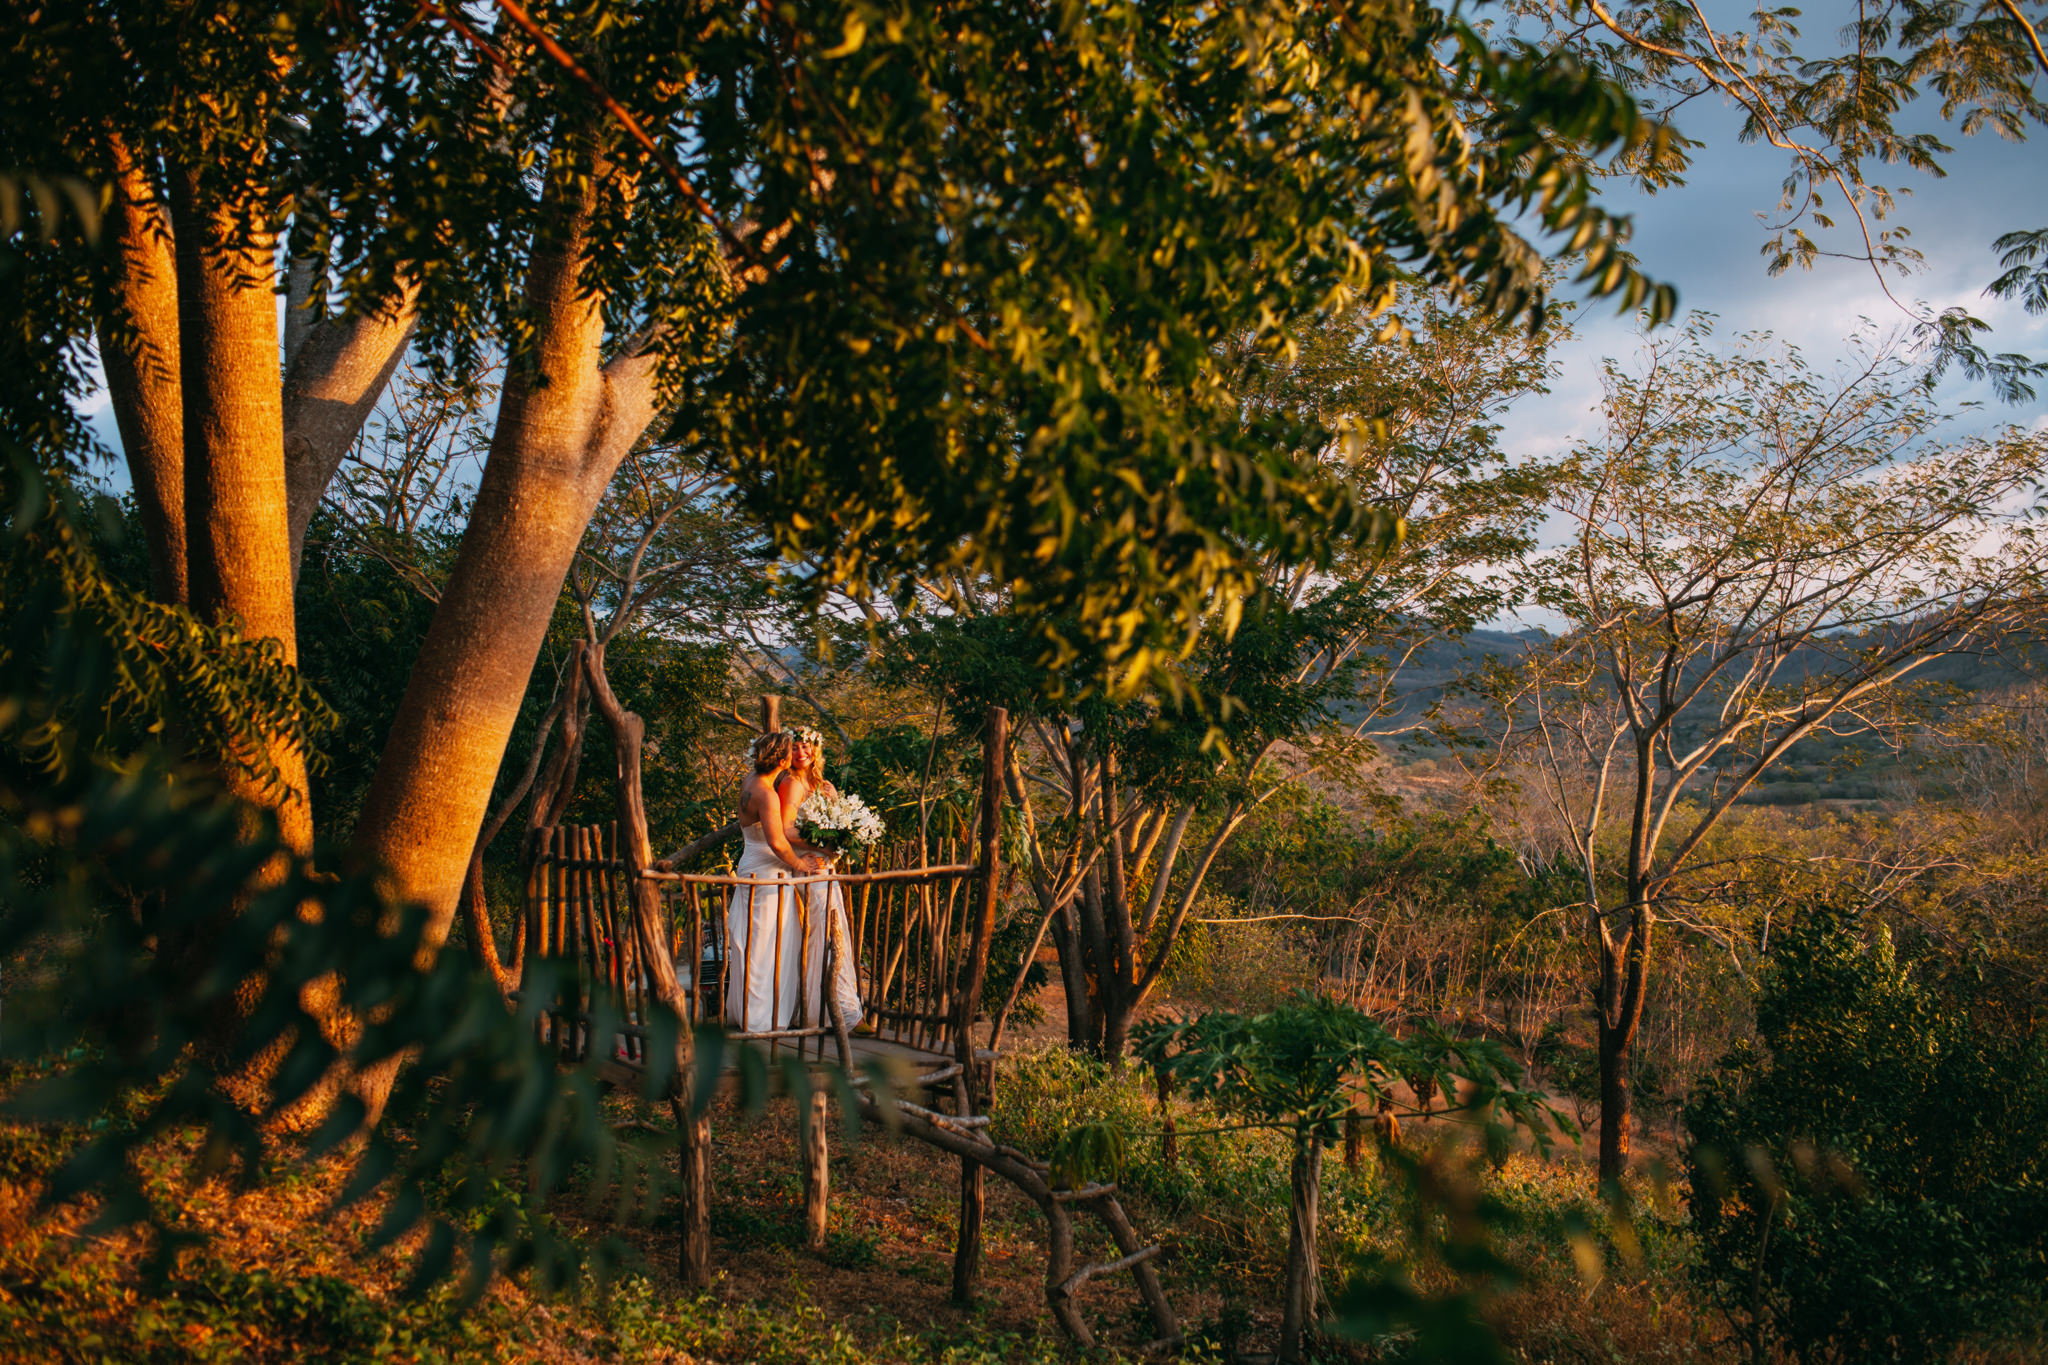 Coast Wedding in the forest, near San juan del Sur, Nicaragua